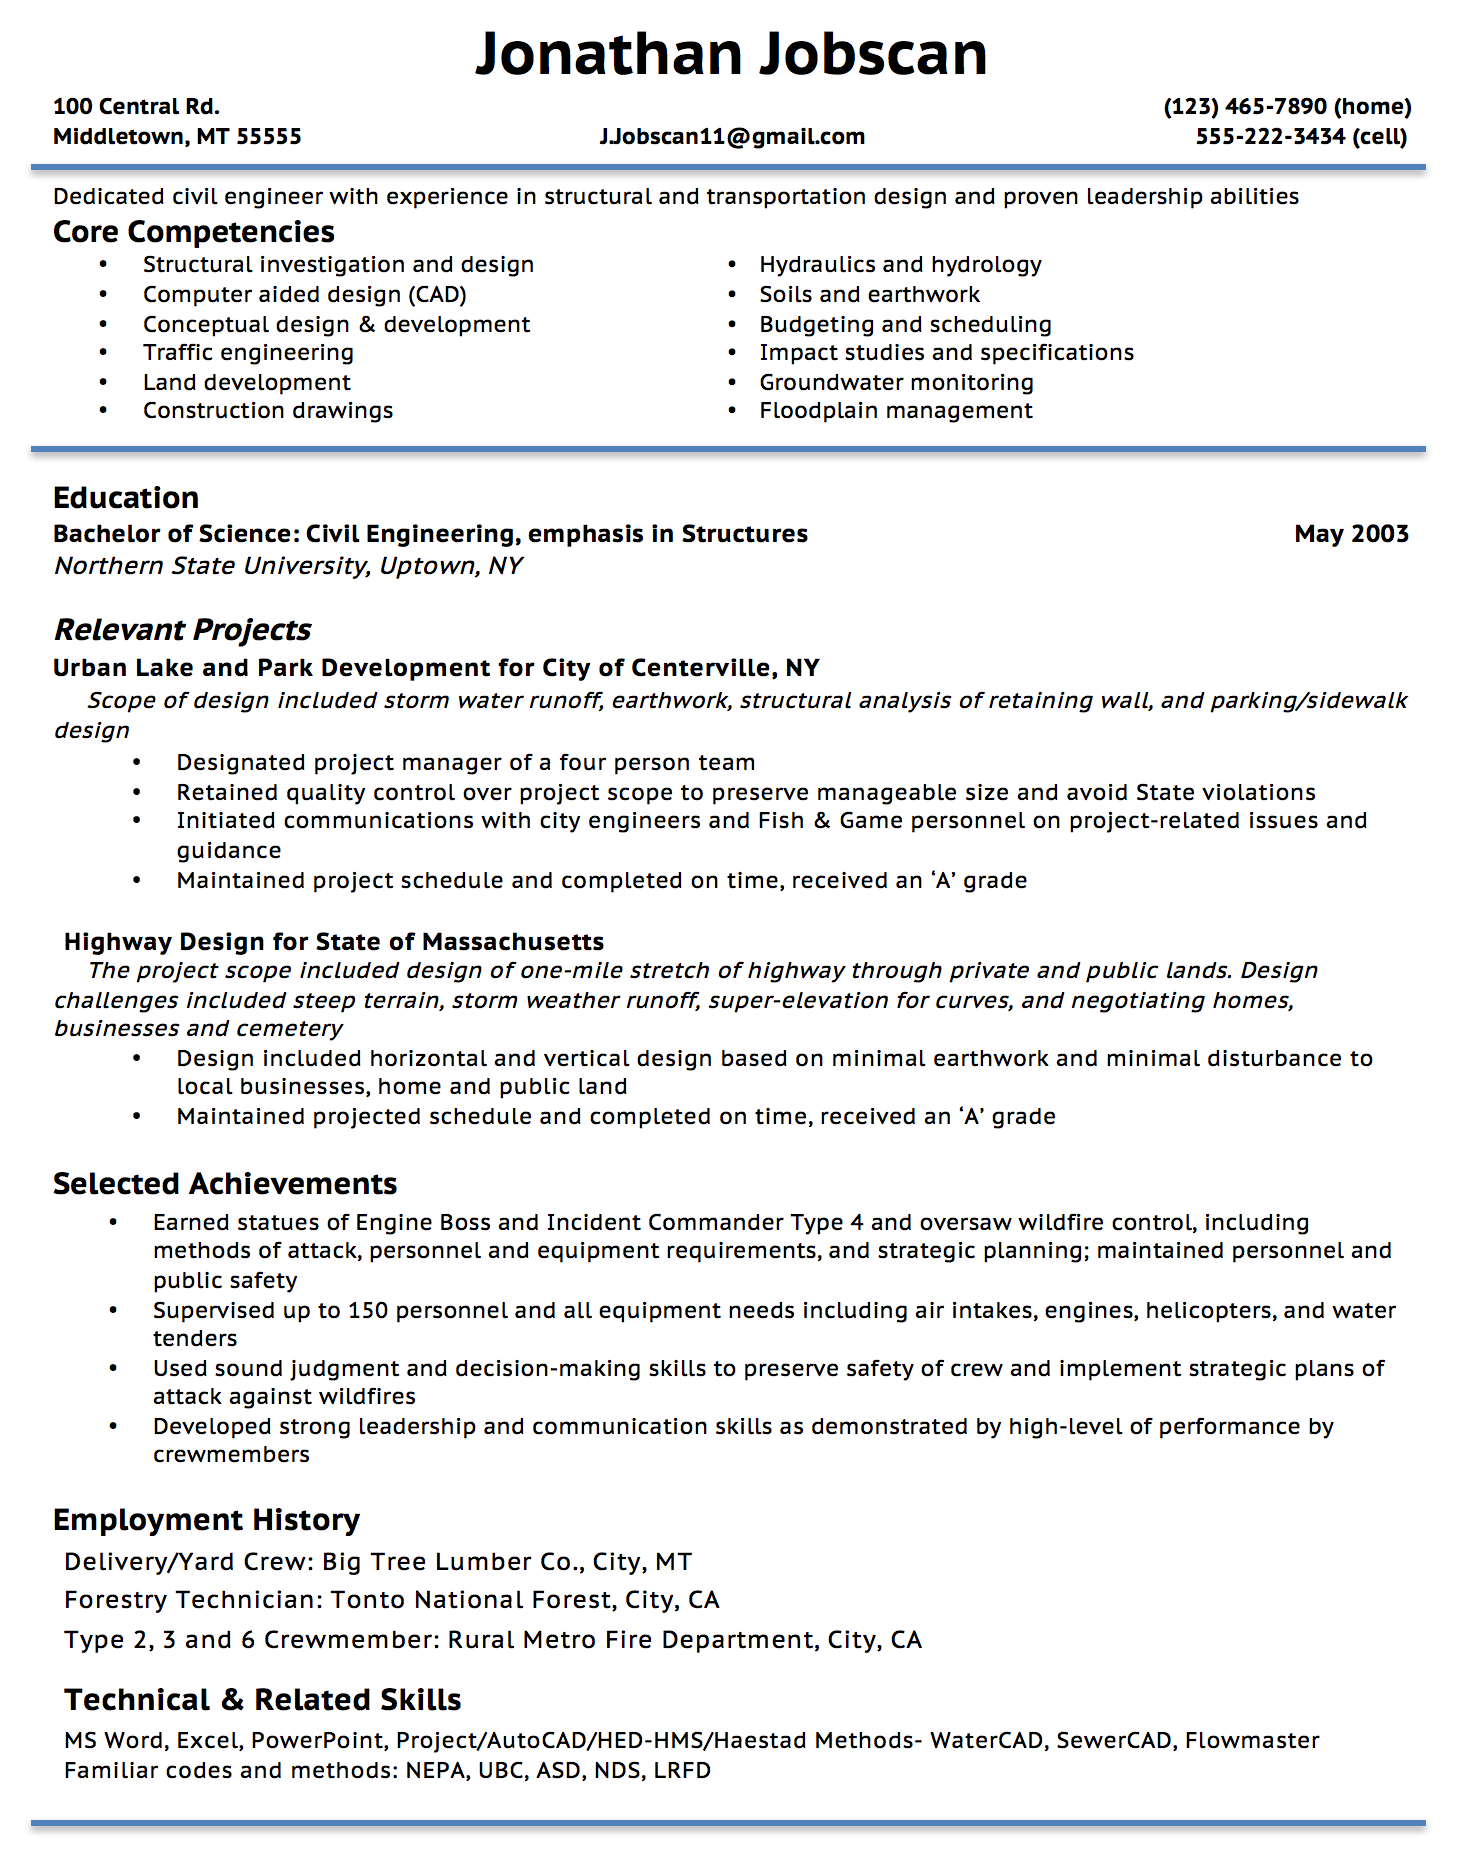 Opposenewapstandardsus  Unique Resume Writing Guide  Jobscan With Inspiring Example Of A Functional Resume Format With Easy On The Eye How To Make A Resume For A Highschool Student Also Examples Of A Good Resume In Addition What Font To Use For Resume And Good Resume Templates As Well As Fast Food Resume Additionally Resume Template Word  From Jobscanco With Opposenewapstandardsus  Inspiring Resume Writing Guide  Jobscan With Easy On The Eye Example Of A Functional Resume Format And Unique How To Make A Resume For A Highschool Student Also Examples Of A Good Resume In Addition What Font To Use For Resume From Jobscanco